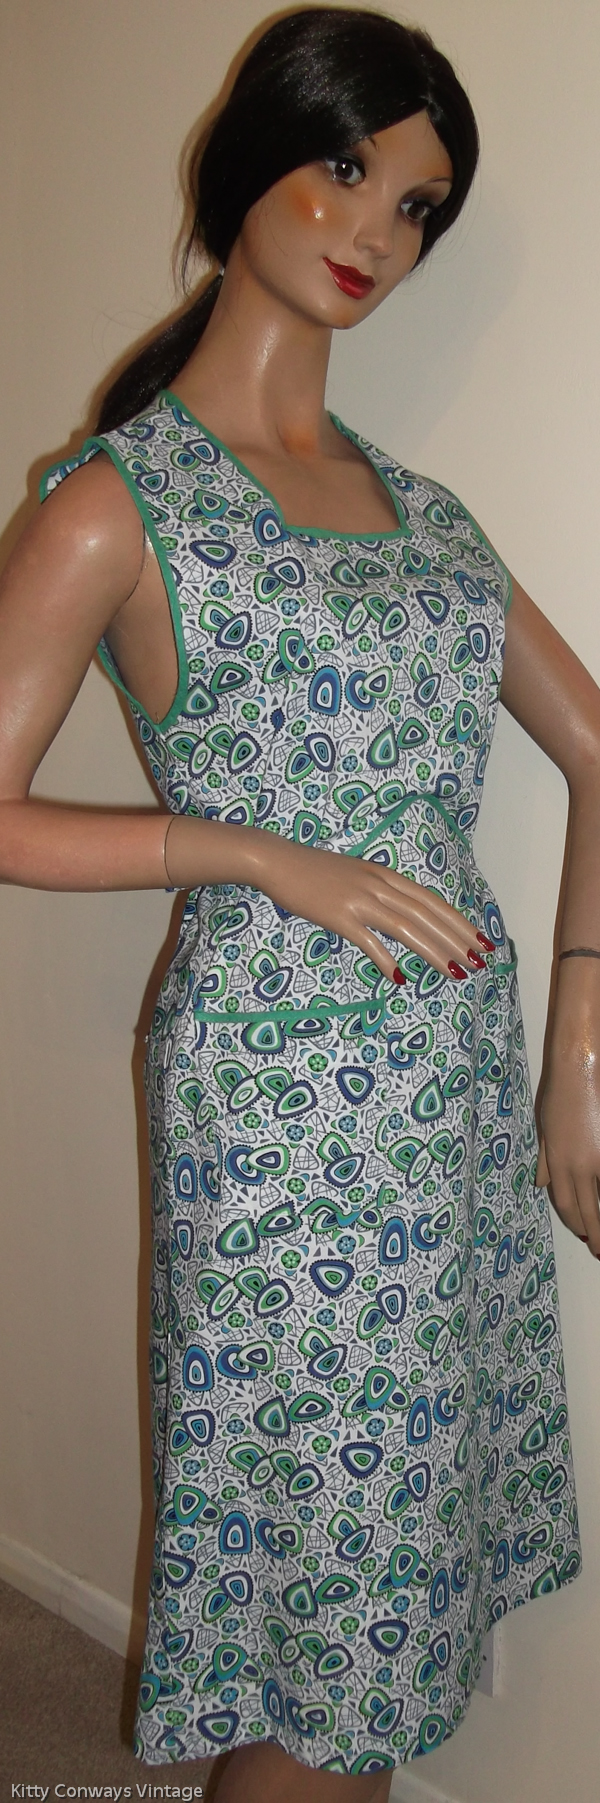 1960s blue green patterned apron - side view